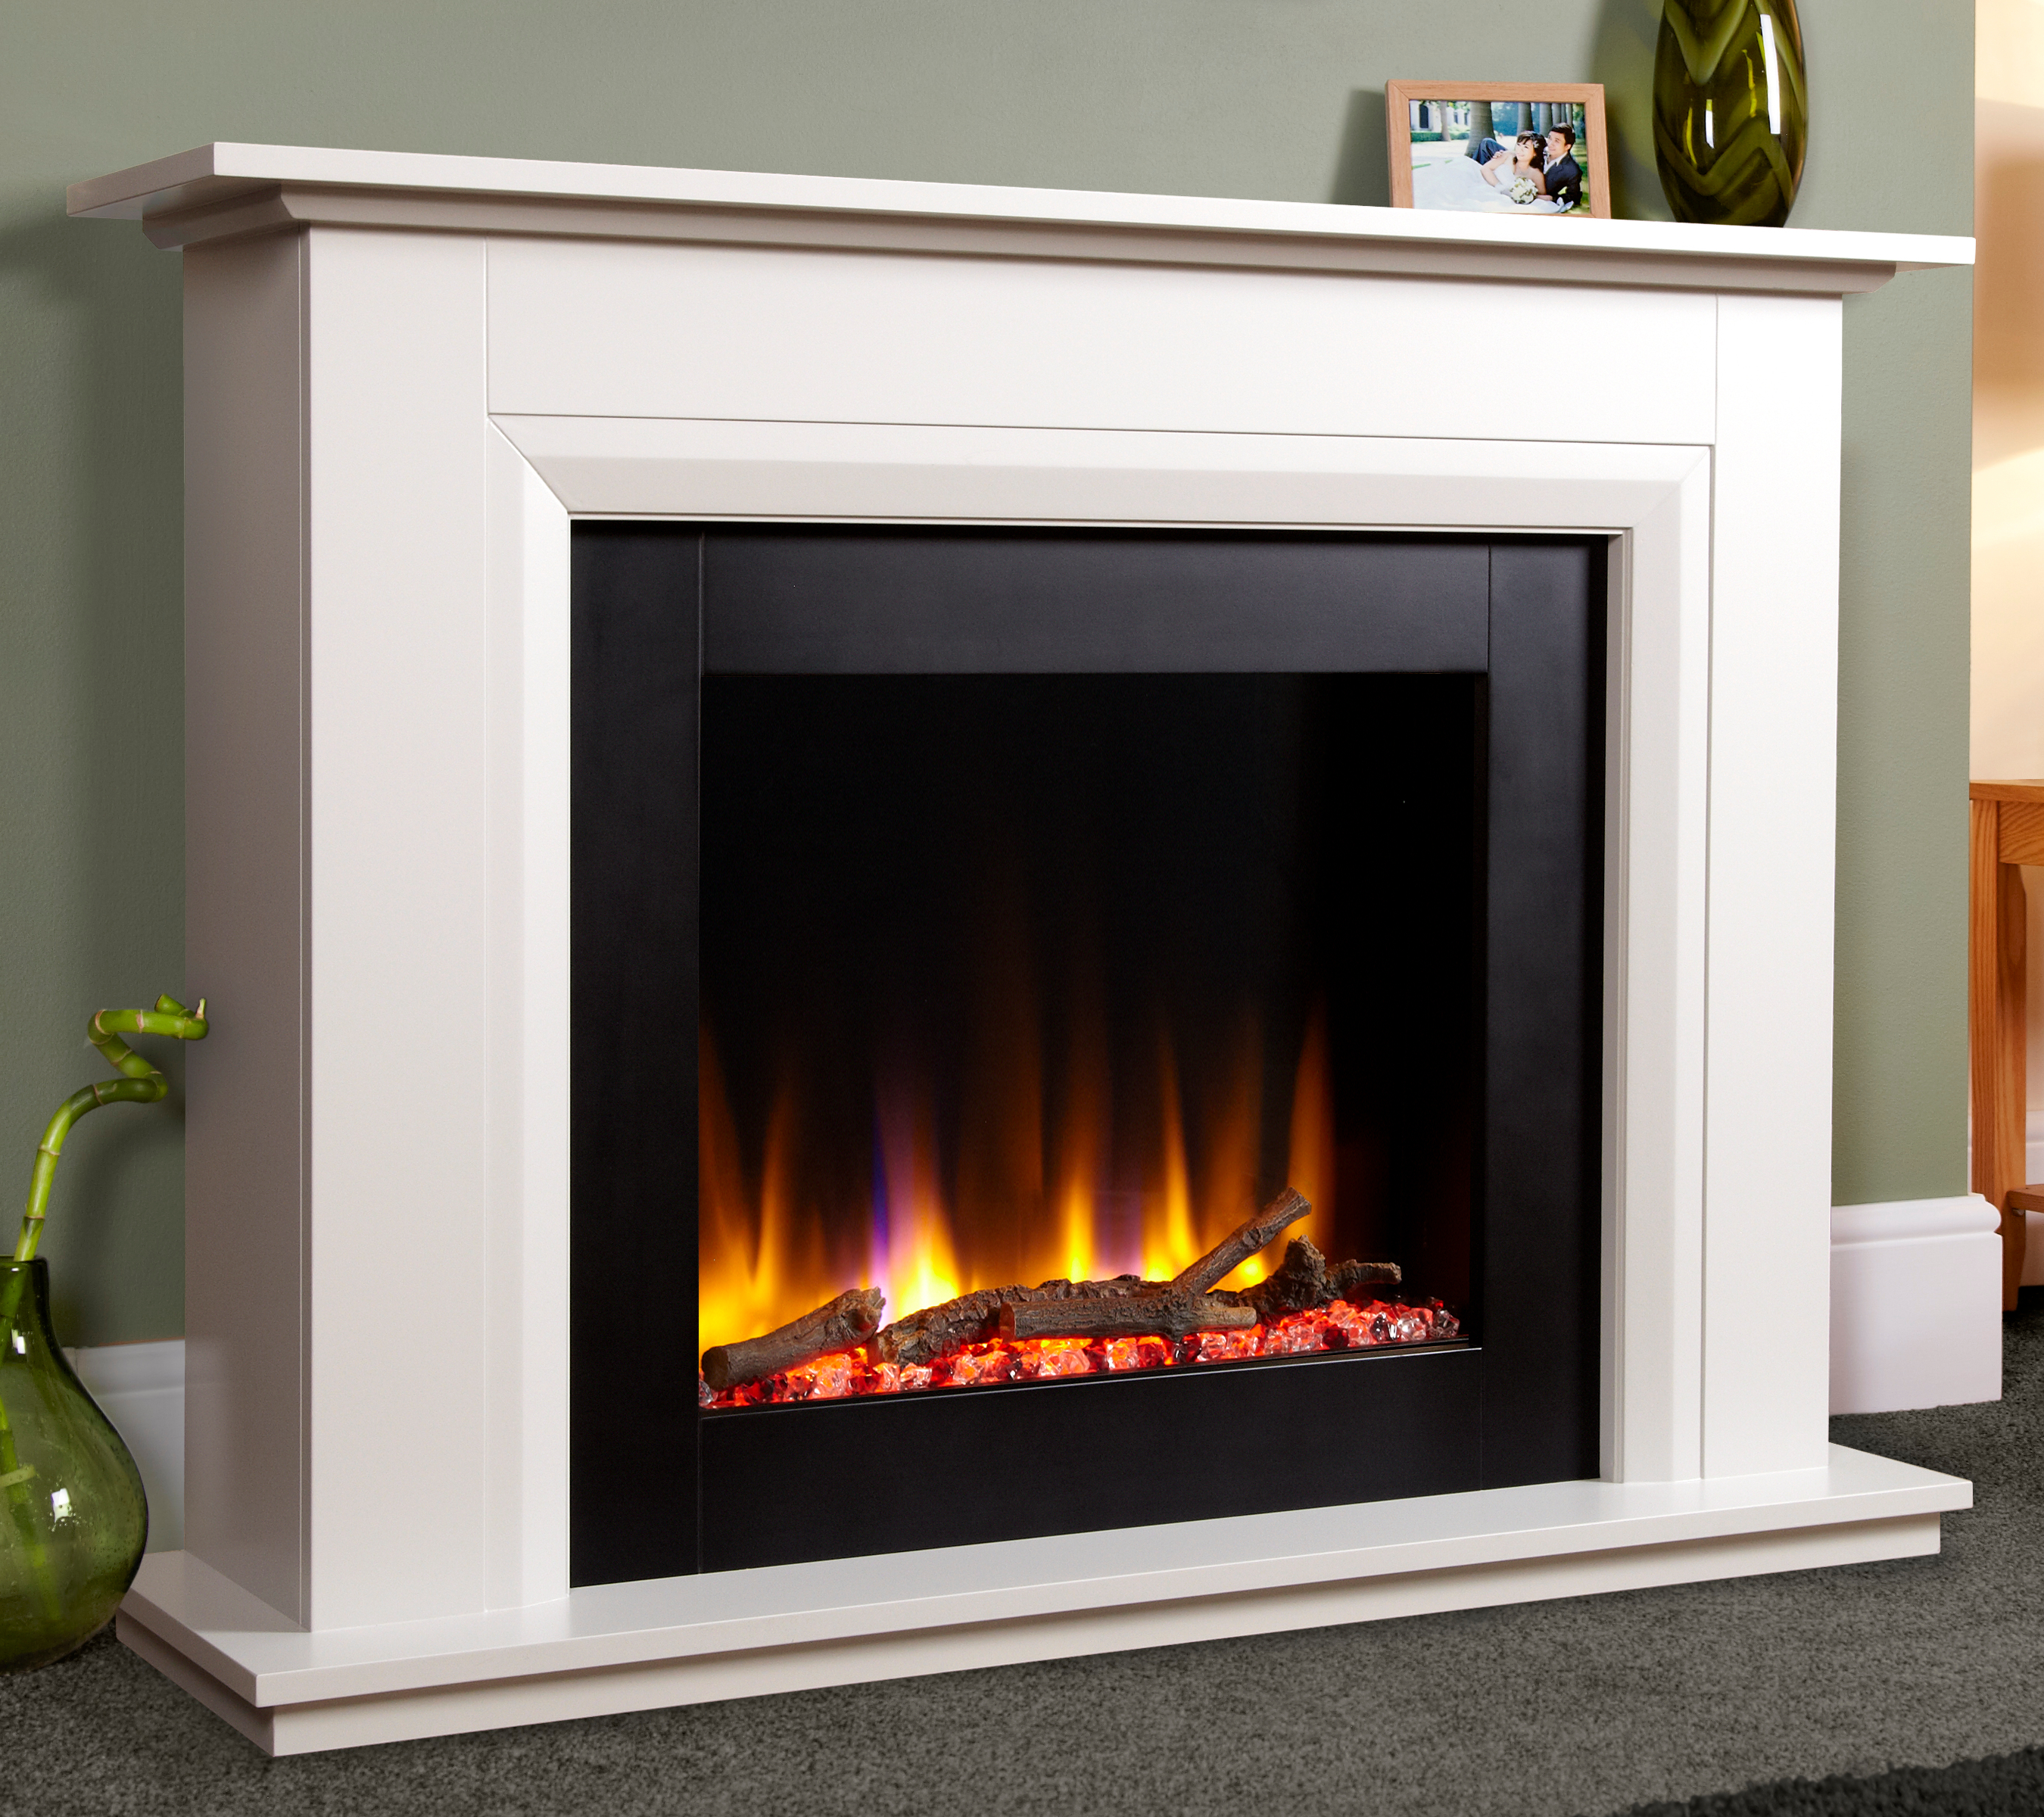 Celsi Ultiflame Vr 22 Elara Electric Fireplace Suite In Smooth White Simply Stoves